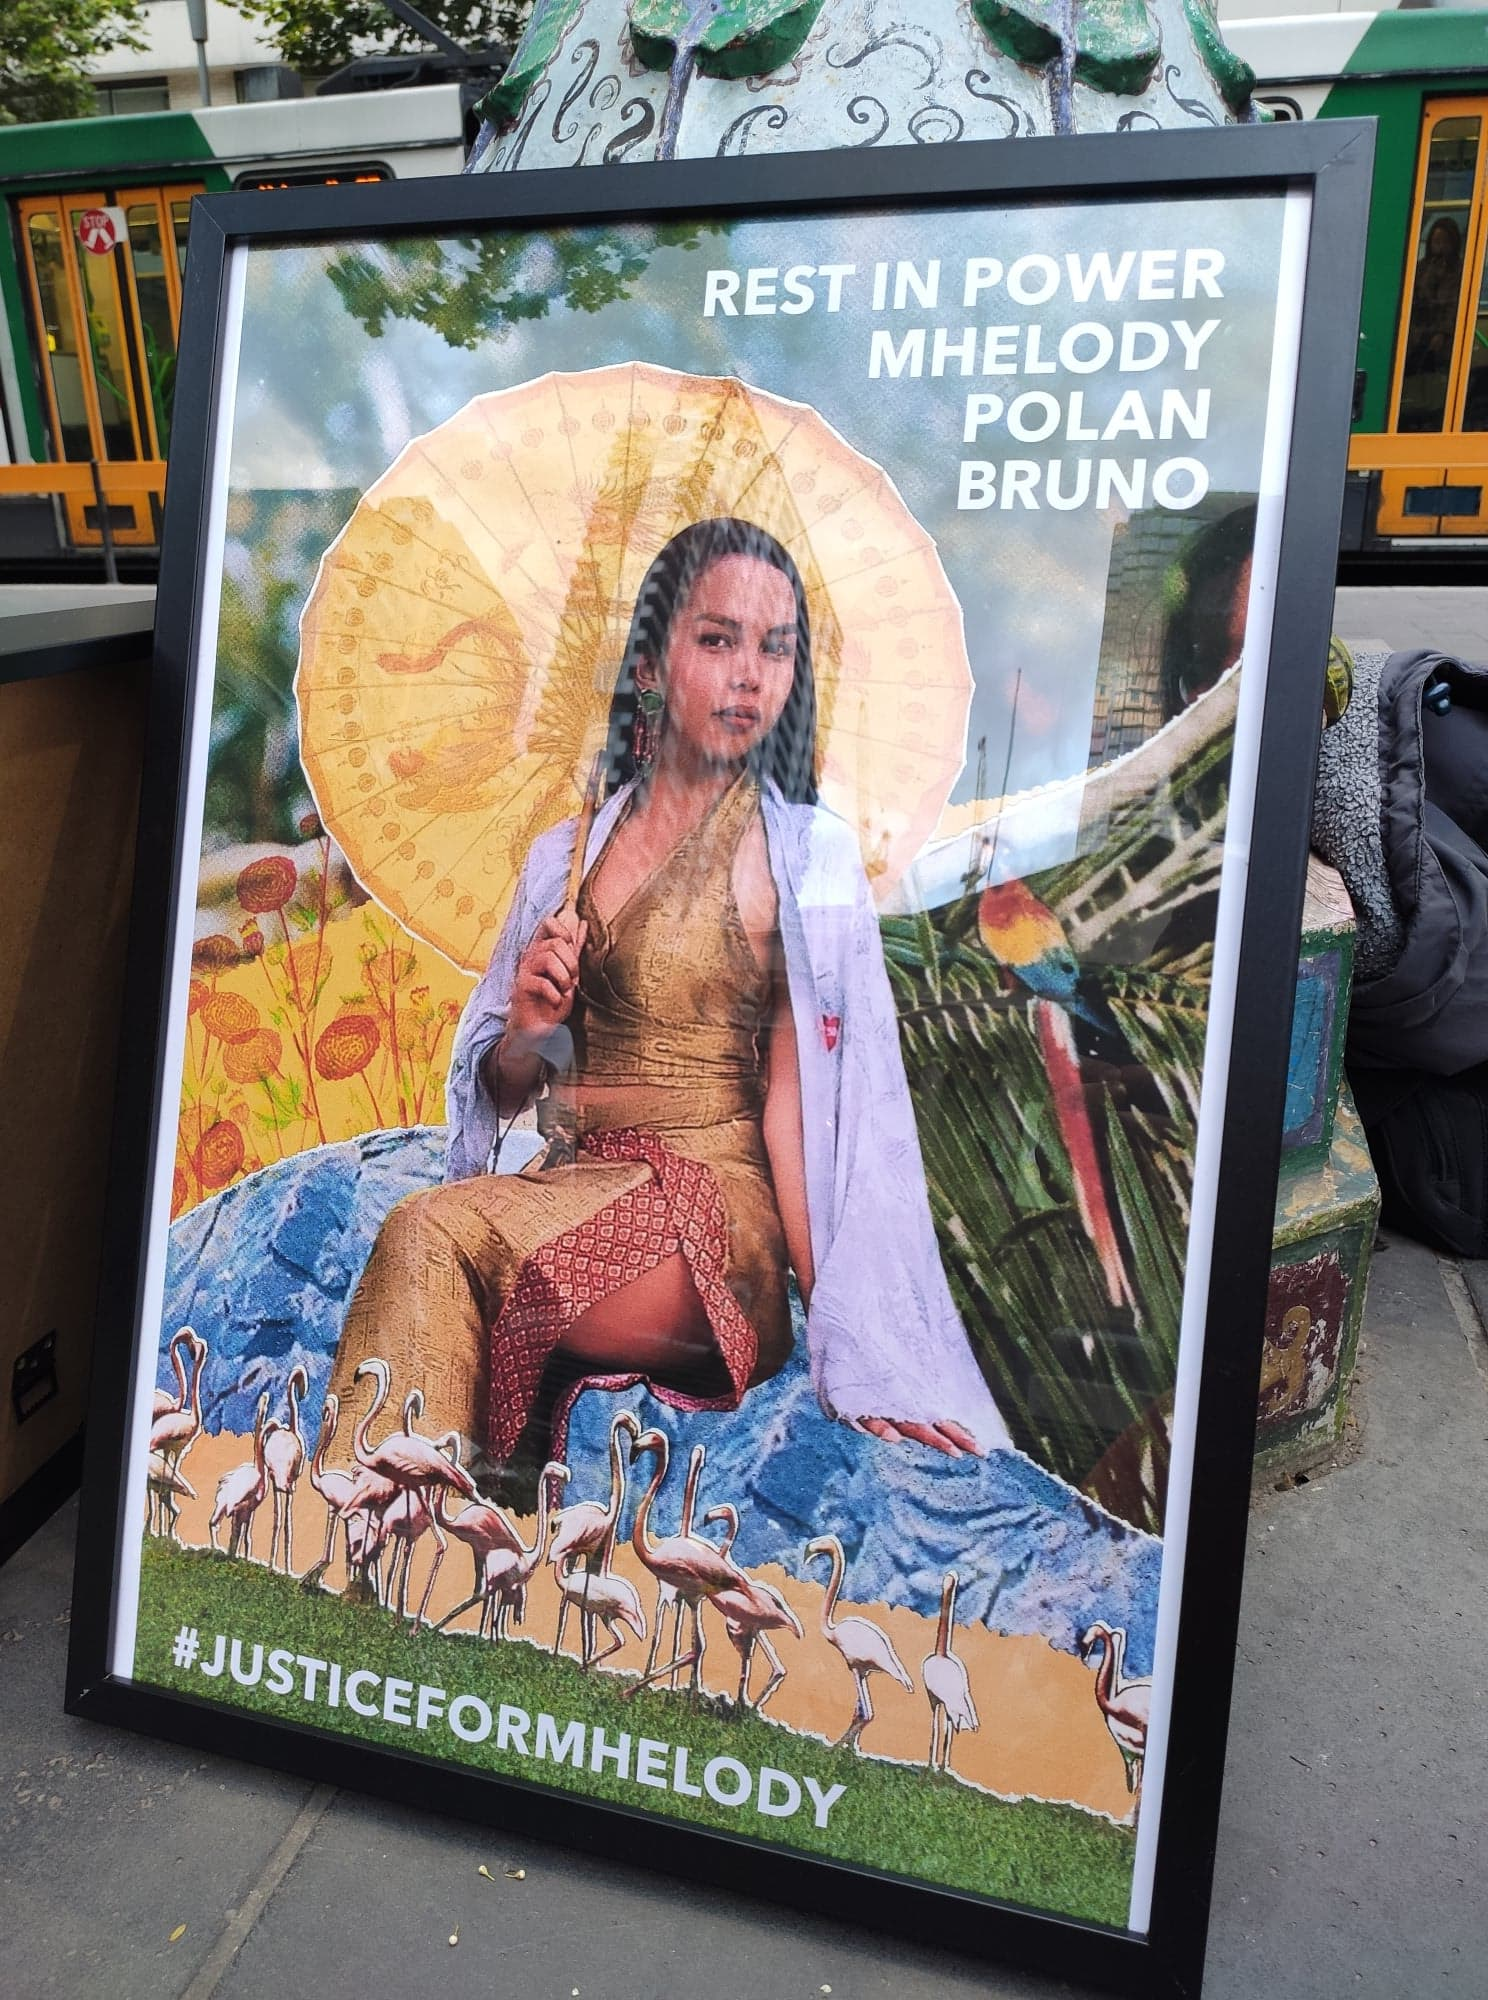 Rest in power Mhelody Polan Bruno framed at the vigil in Melbourne 2019, art work by Lachlan Pham